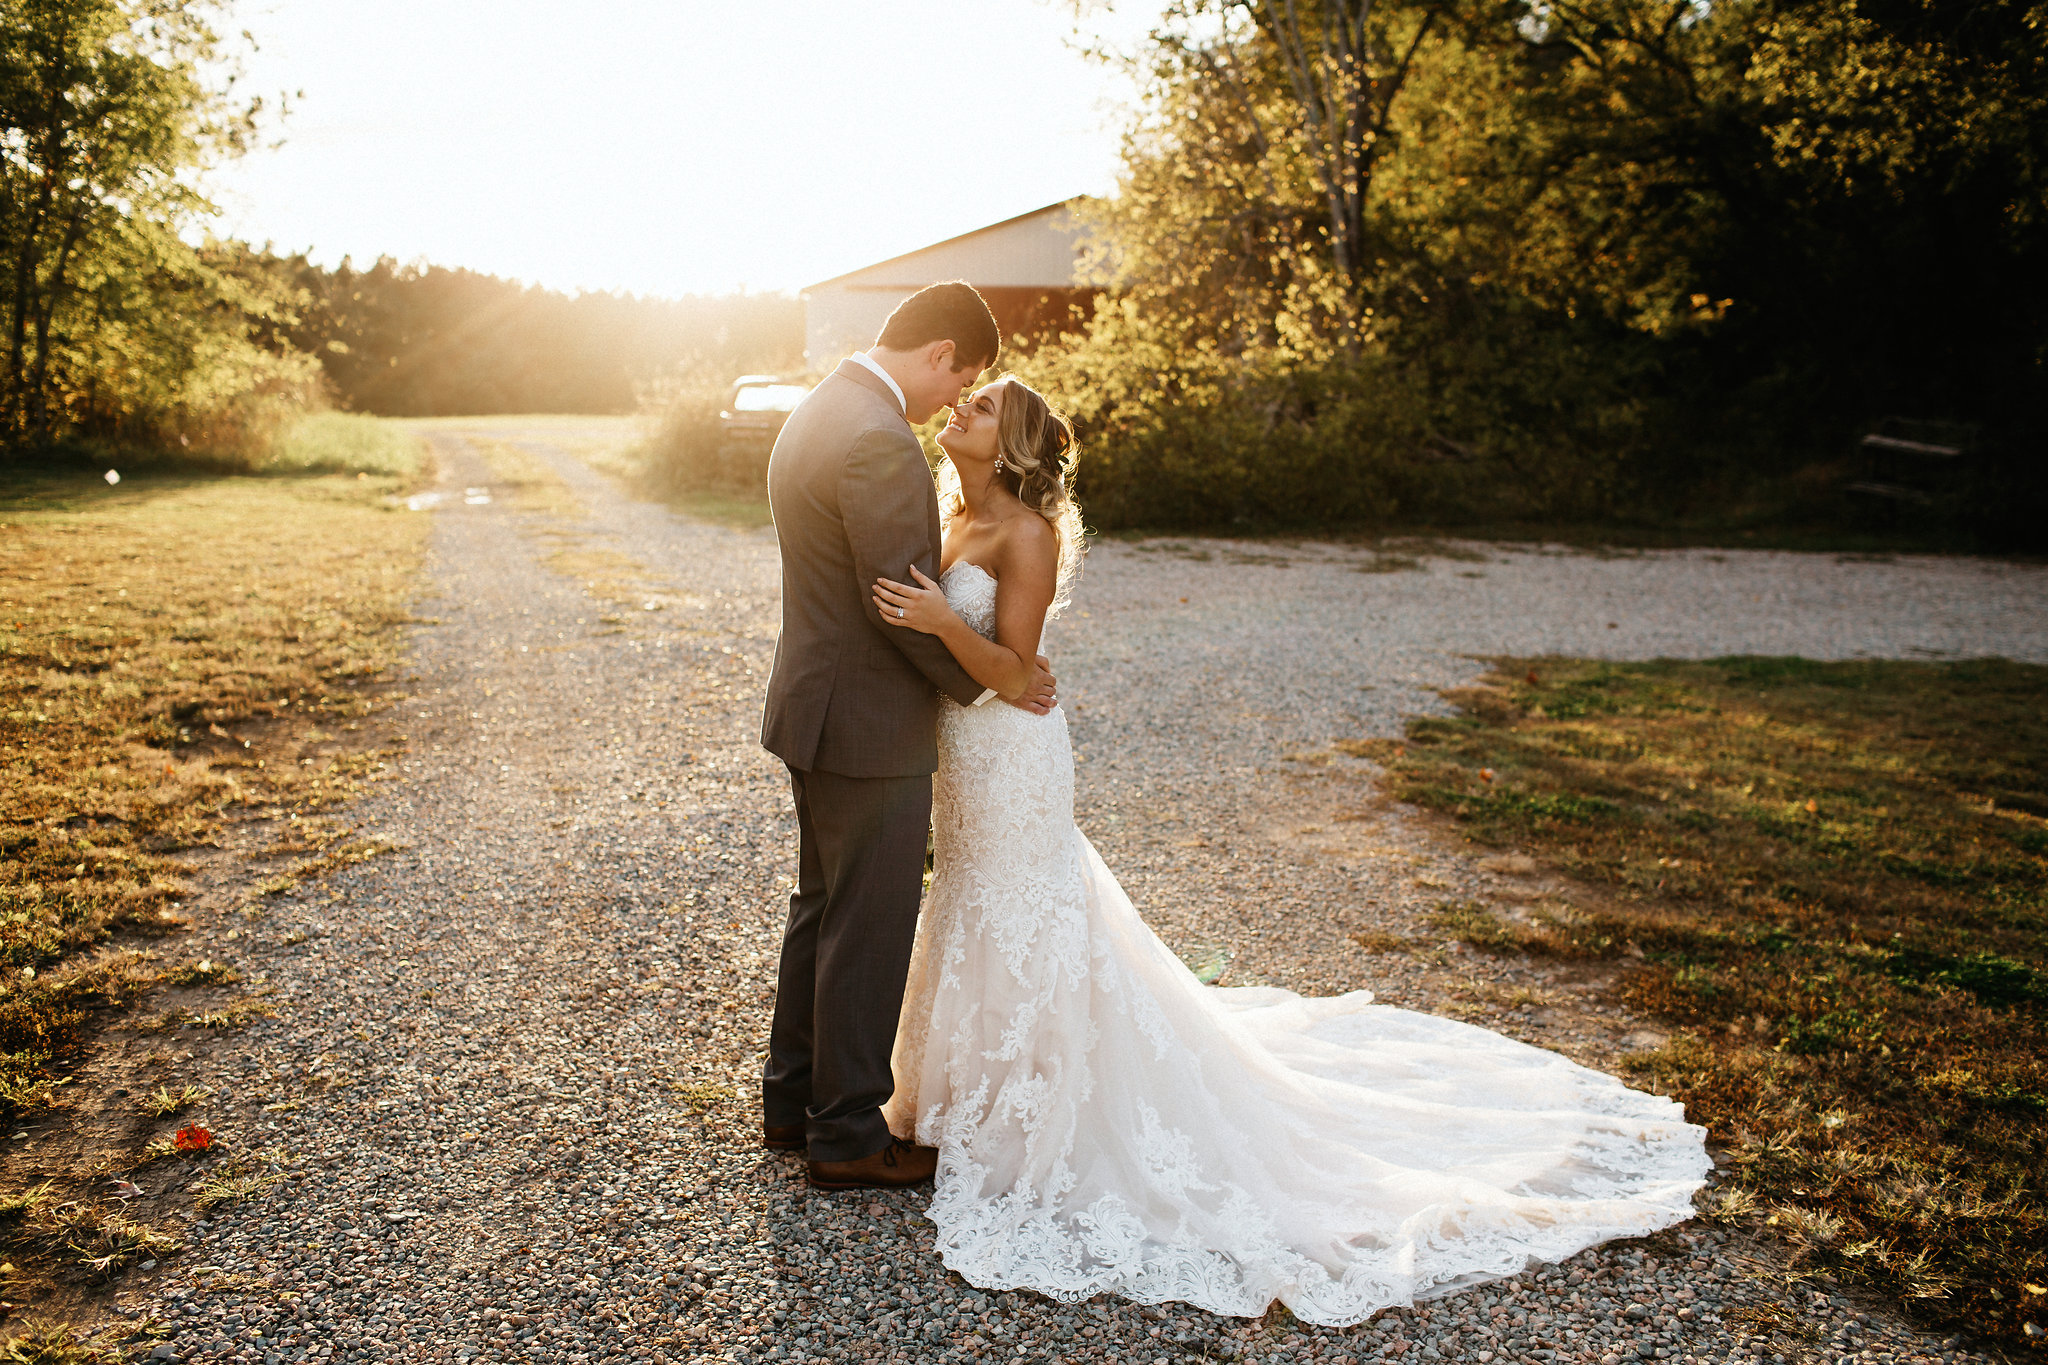 Ashley&NathanMarried2017-11-10at19.26.55PM12.jpg